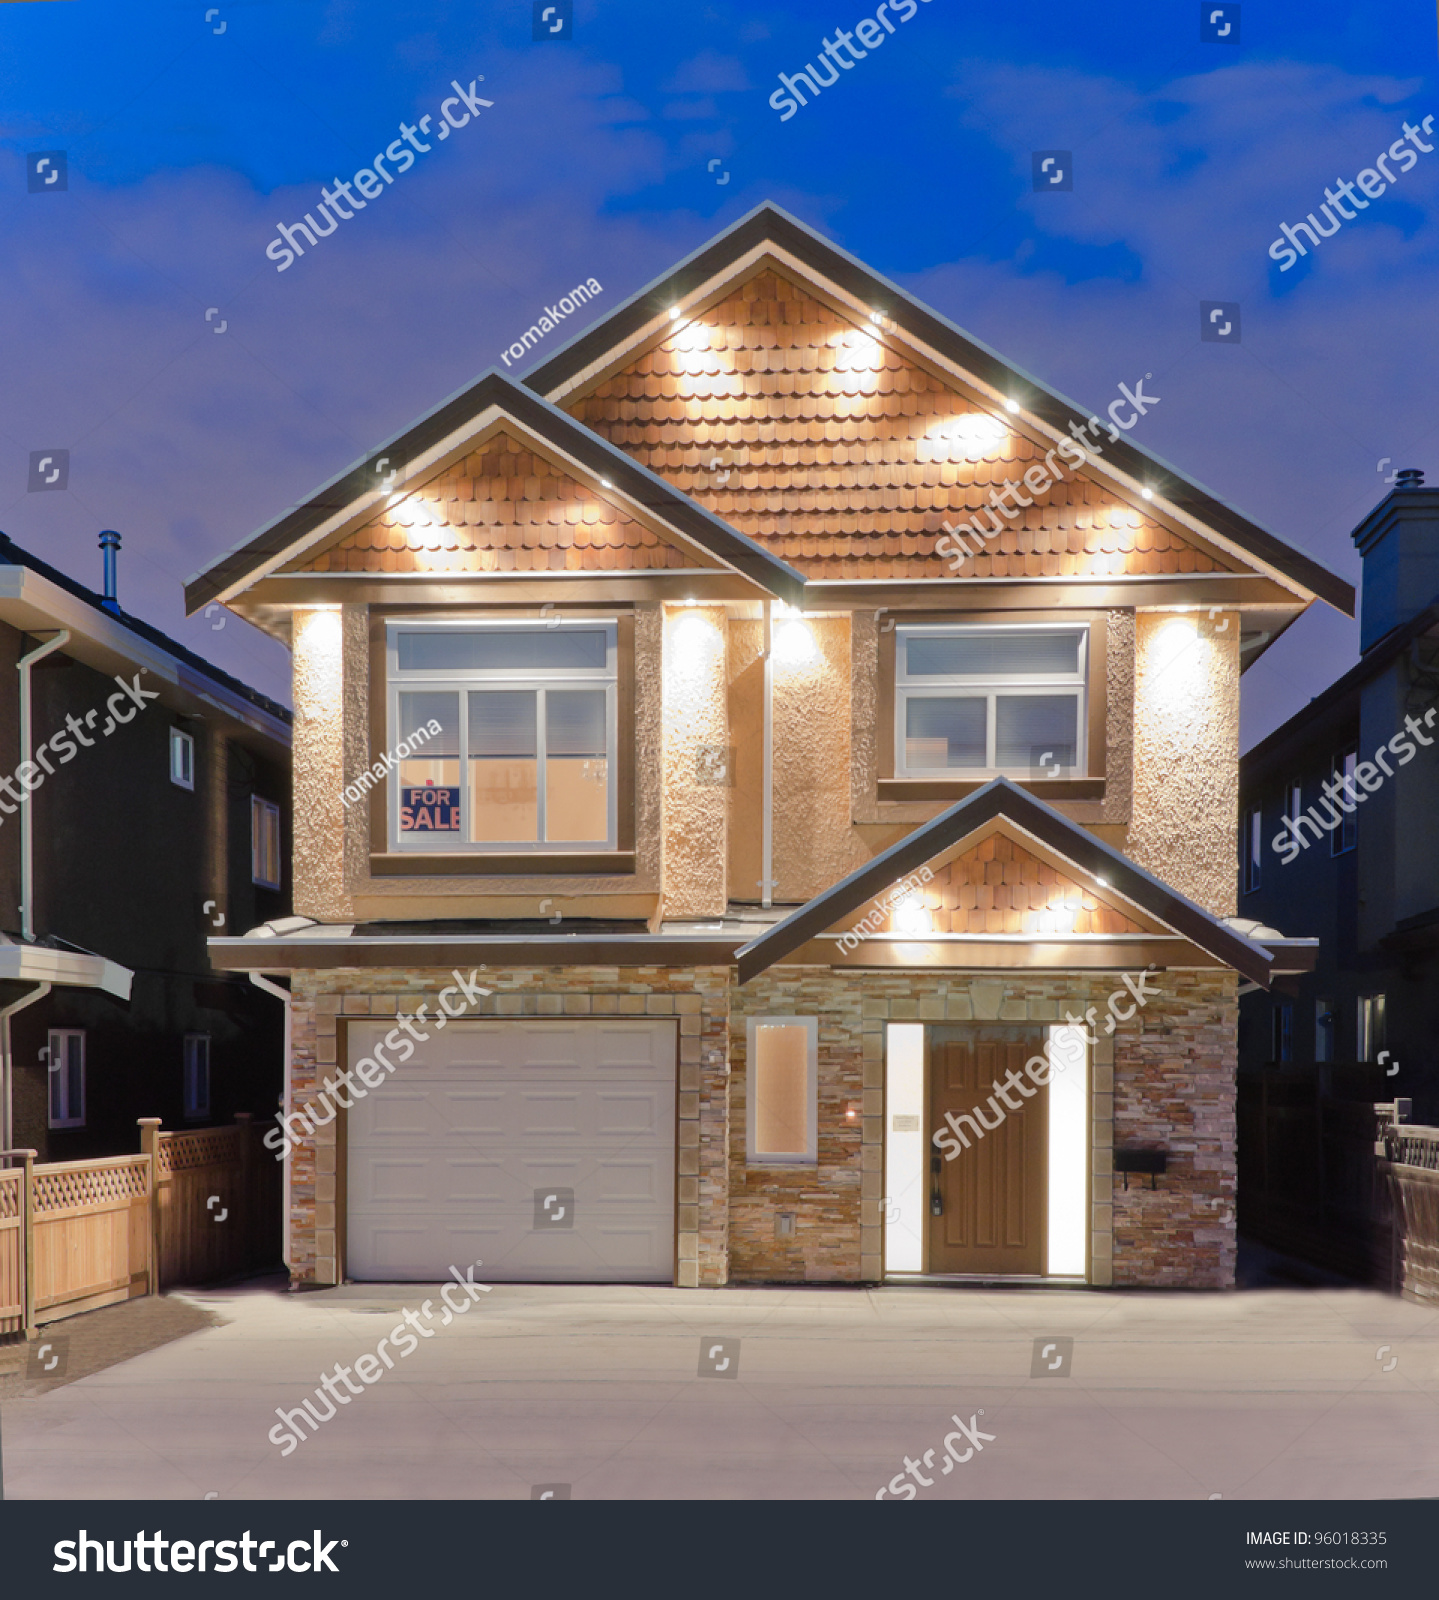 Brand new house sale suburbs dusk stock photo 96018335 for Pitchers of houses for sale